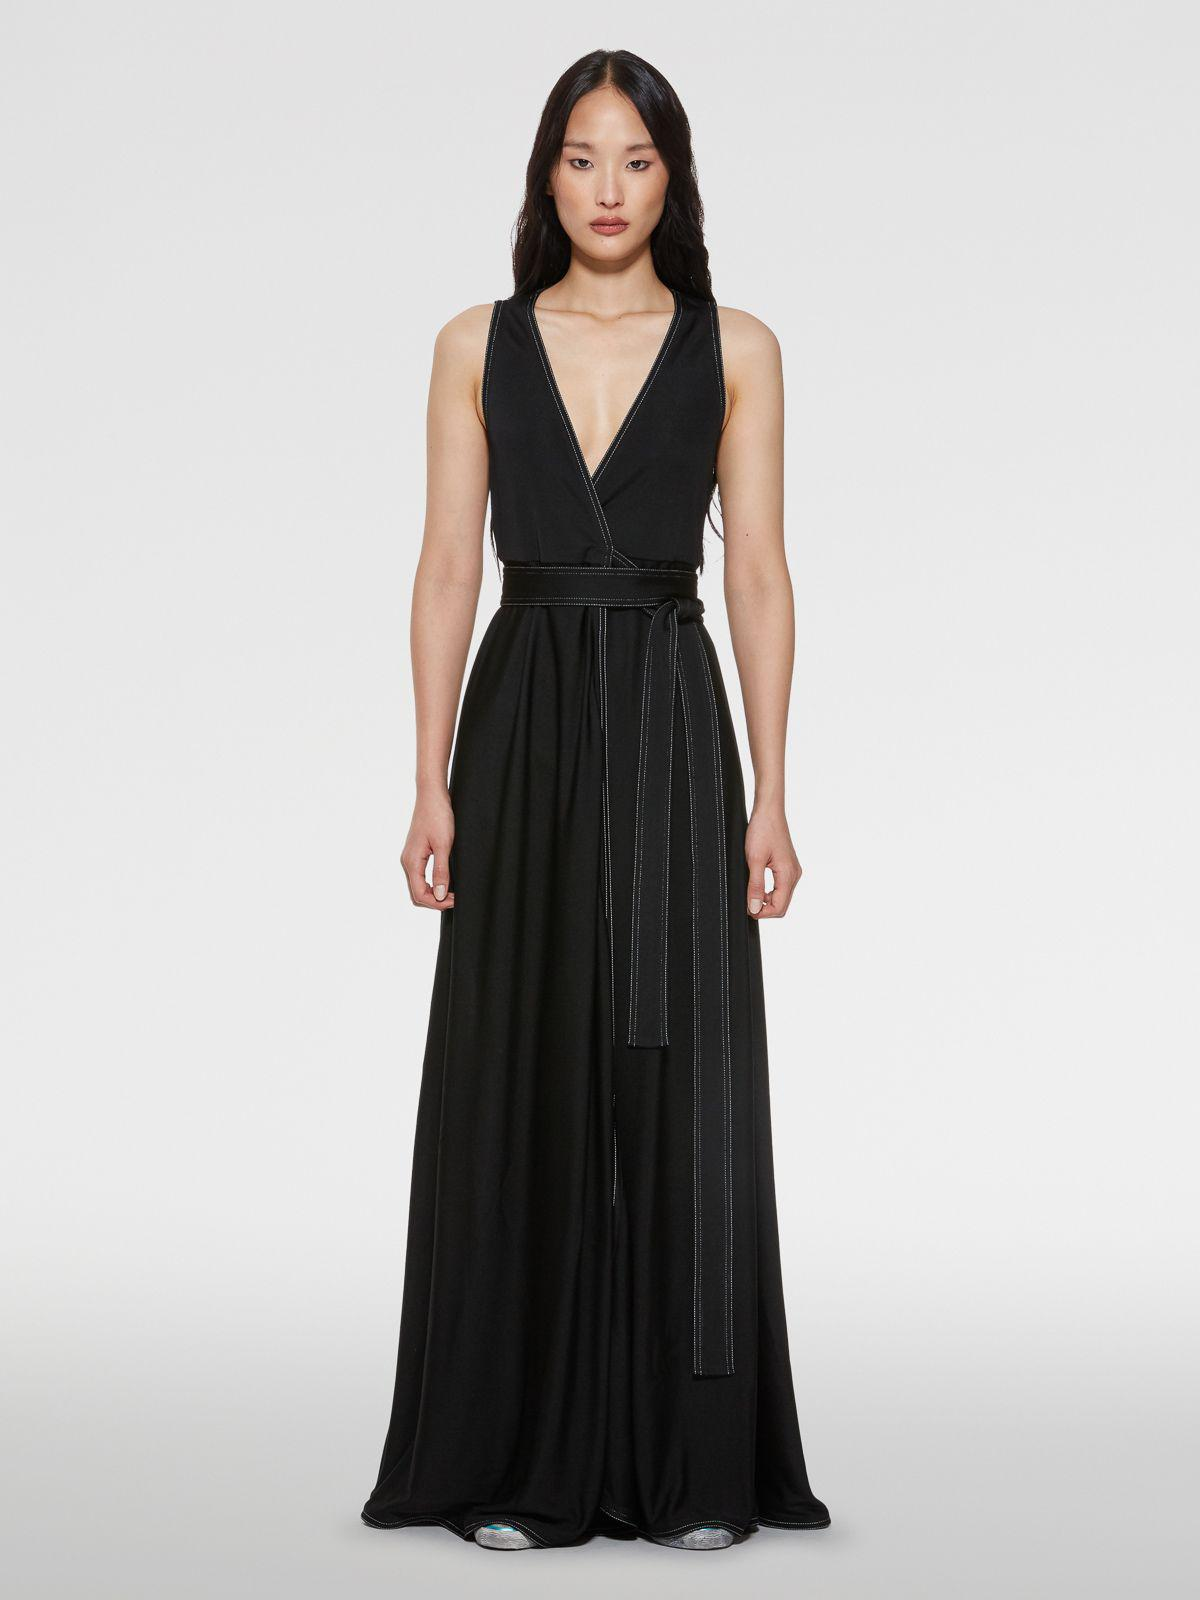 Cleopatra dress with side slit and belt at the waist